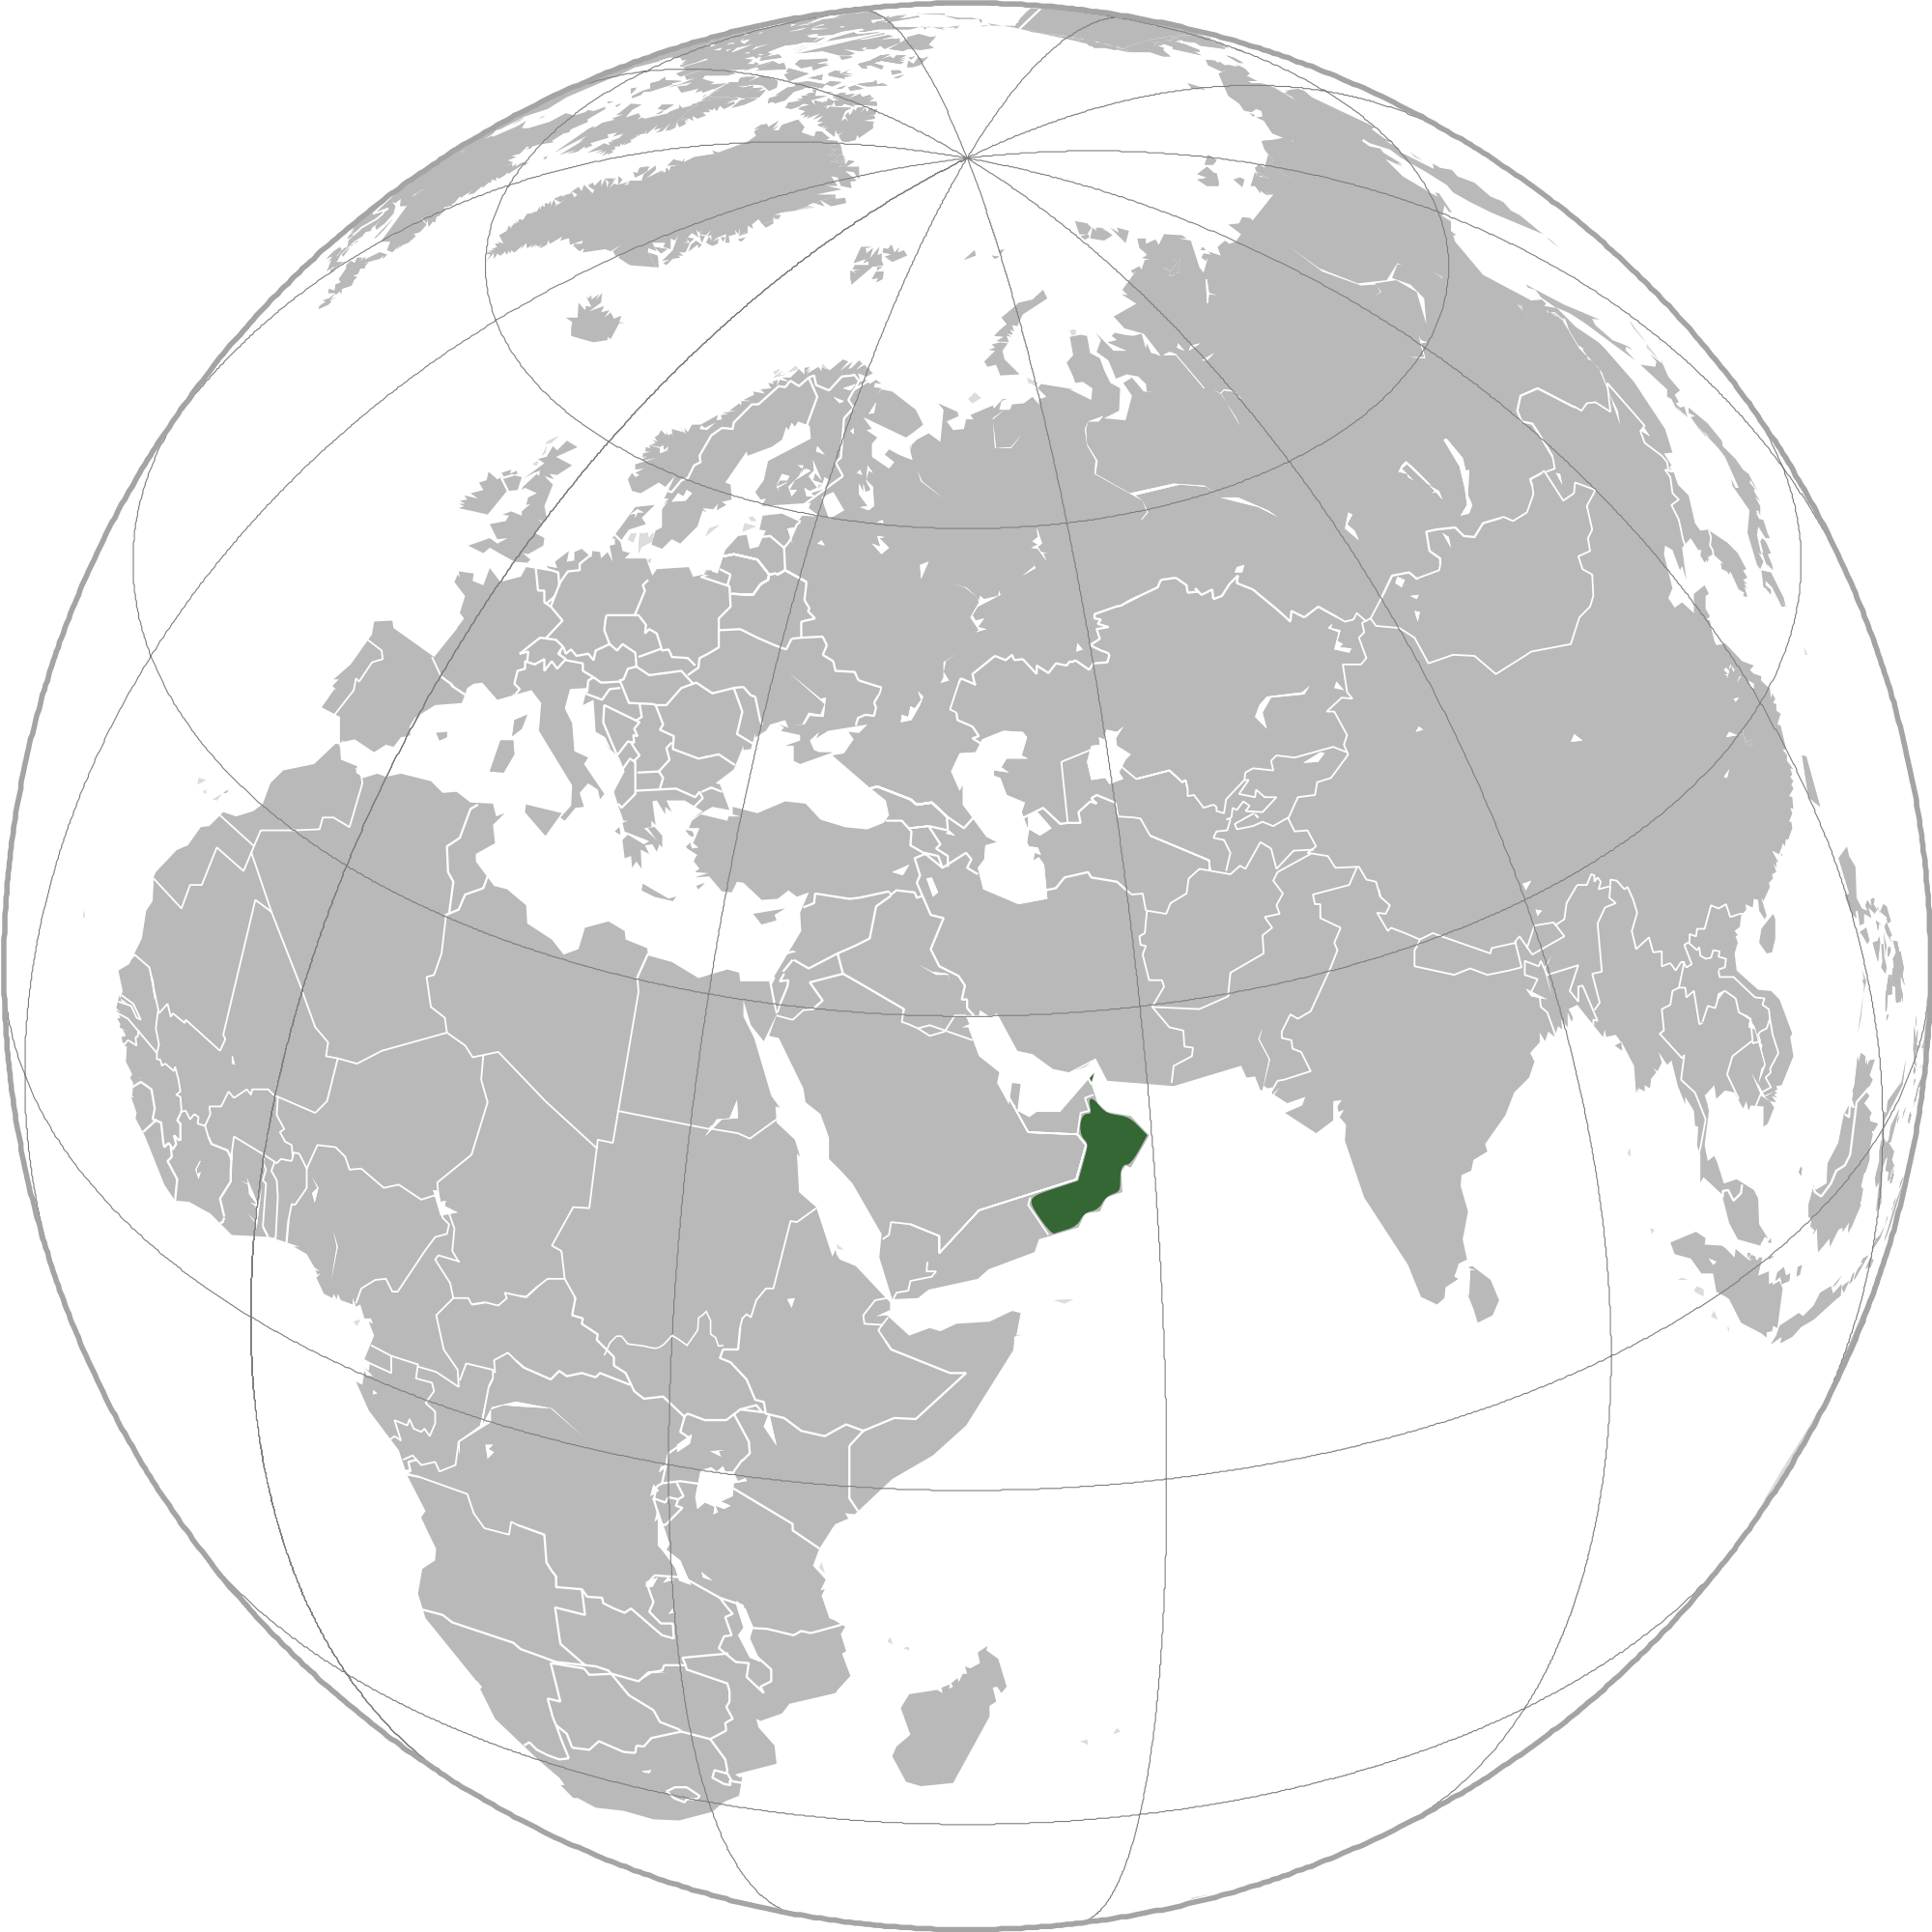 Location of the Oman in the World Map